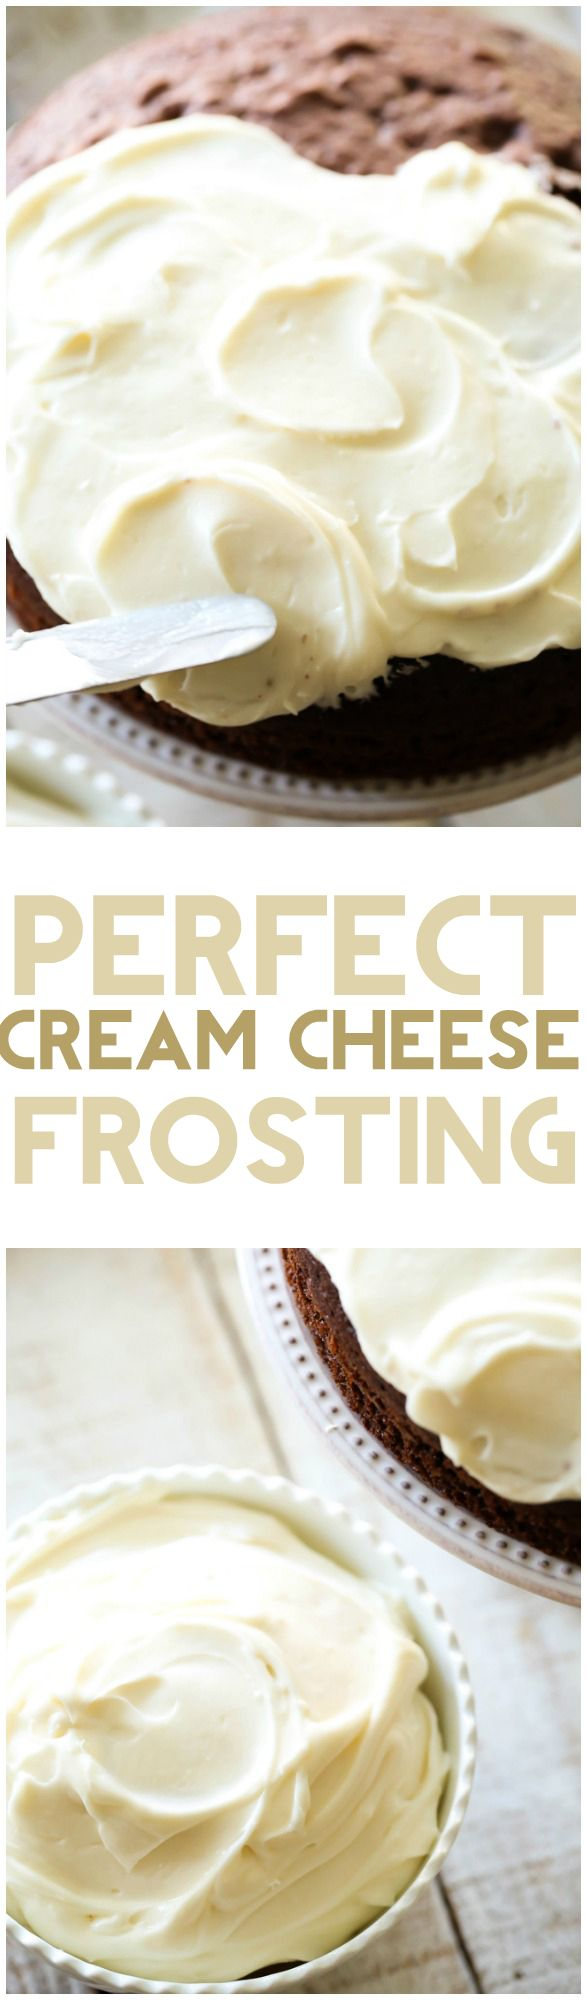 Perfect Cream Cheese Frosting - This cream cheese frosting is perfection! Smooth, fluffy and absolutely delicious!